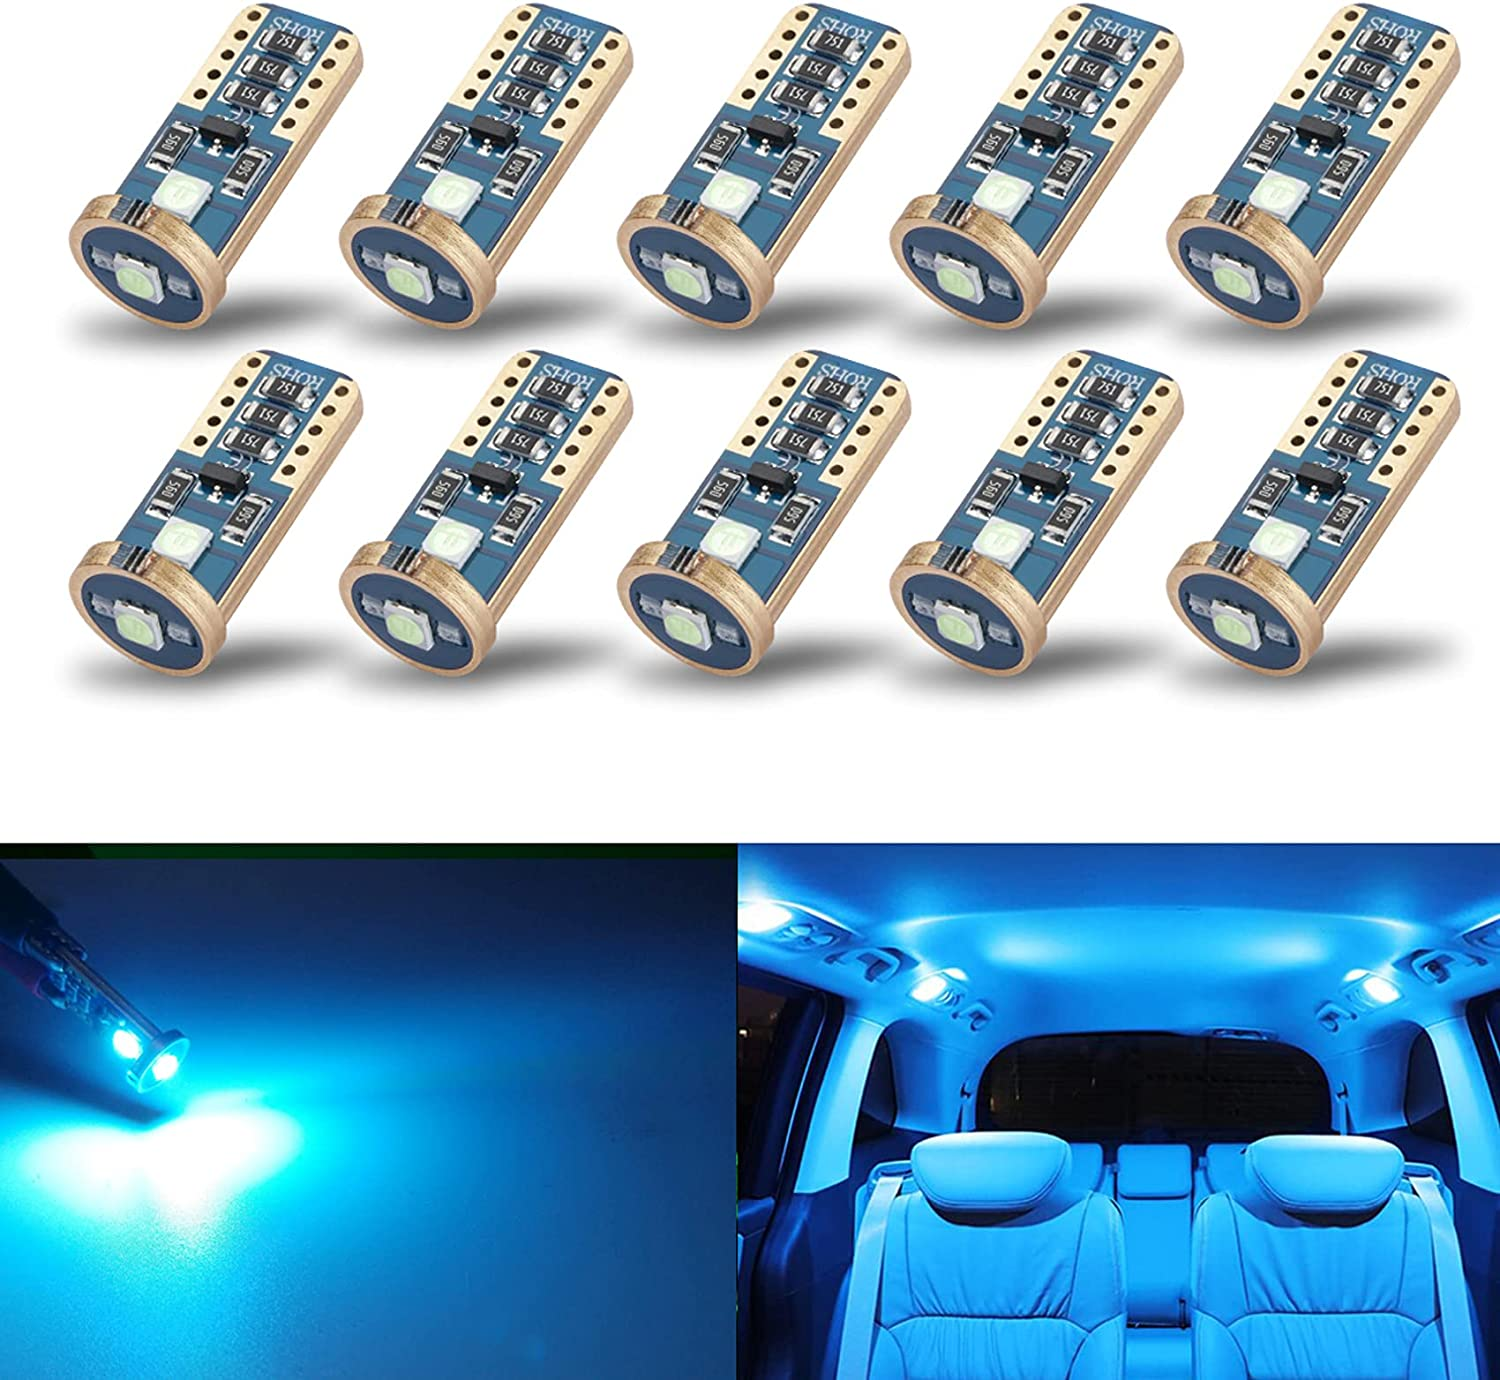 iBrightstar Newest Extremely Bright Wedge T10 168 194 LED Bulbs for Car Interior Dome Map Door Courtesy License Plate Lights, Ice Blue